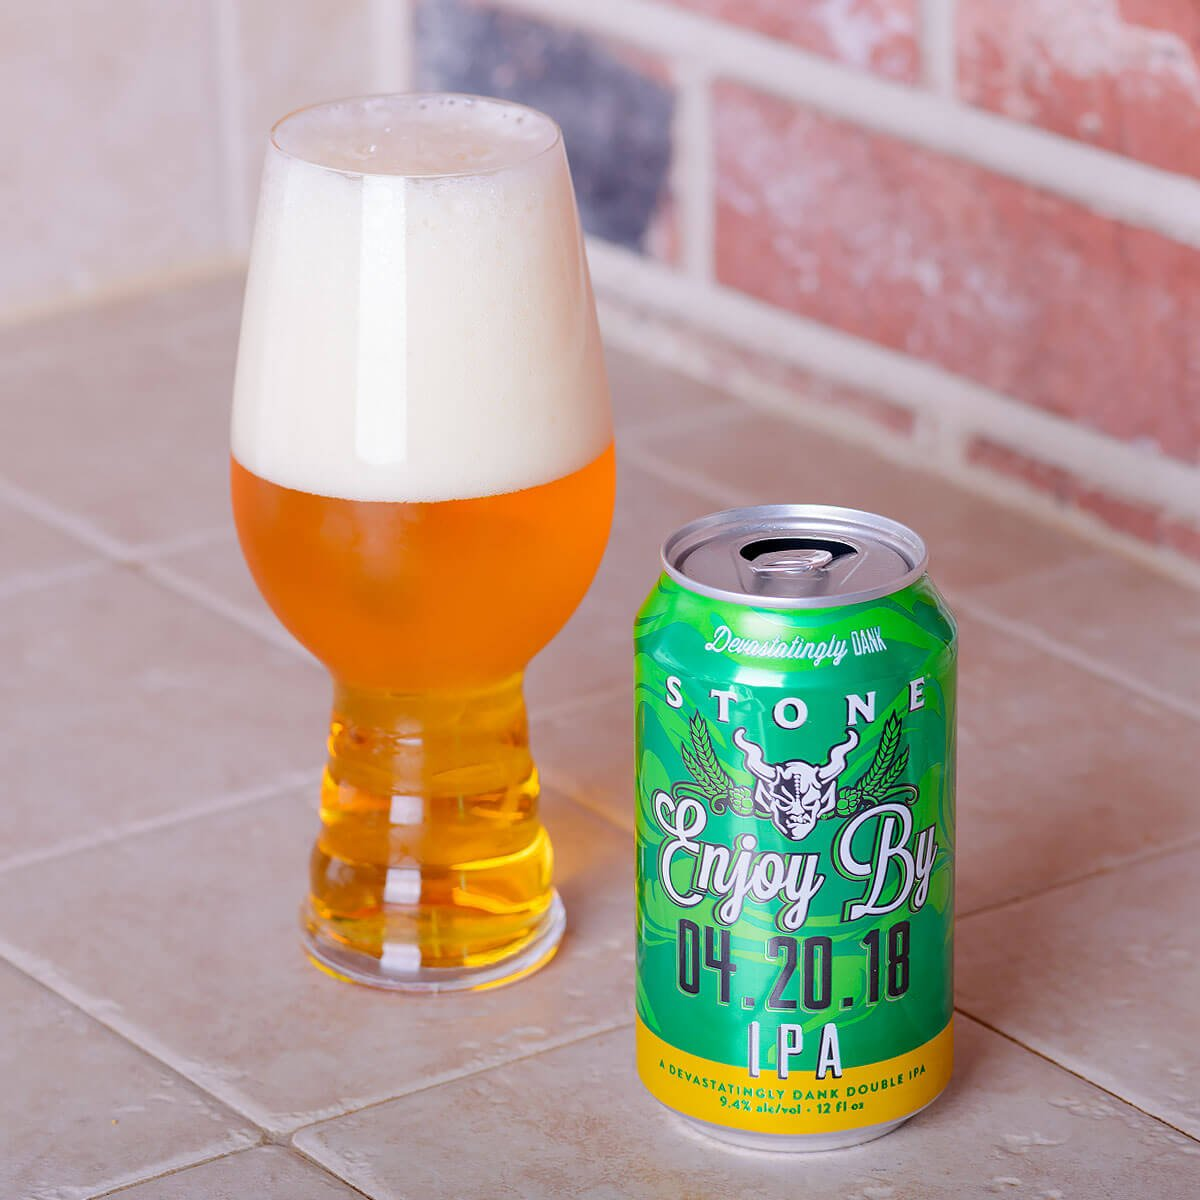 Stone Enjoy By 04.20.18 IPA, an American Double IPA by Stone Brewing